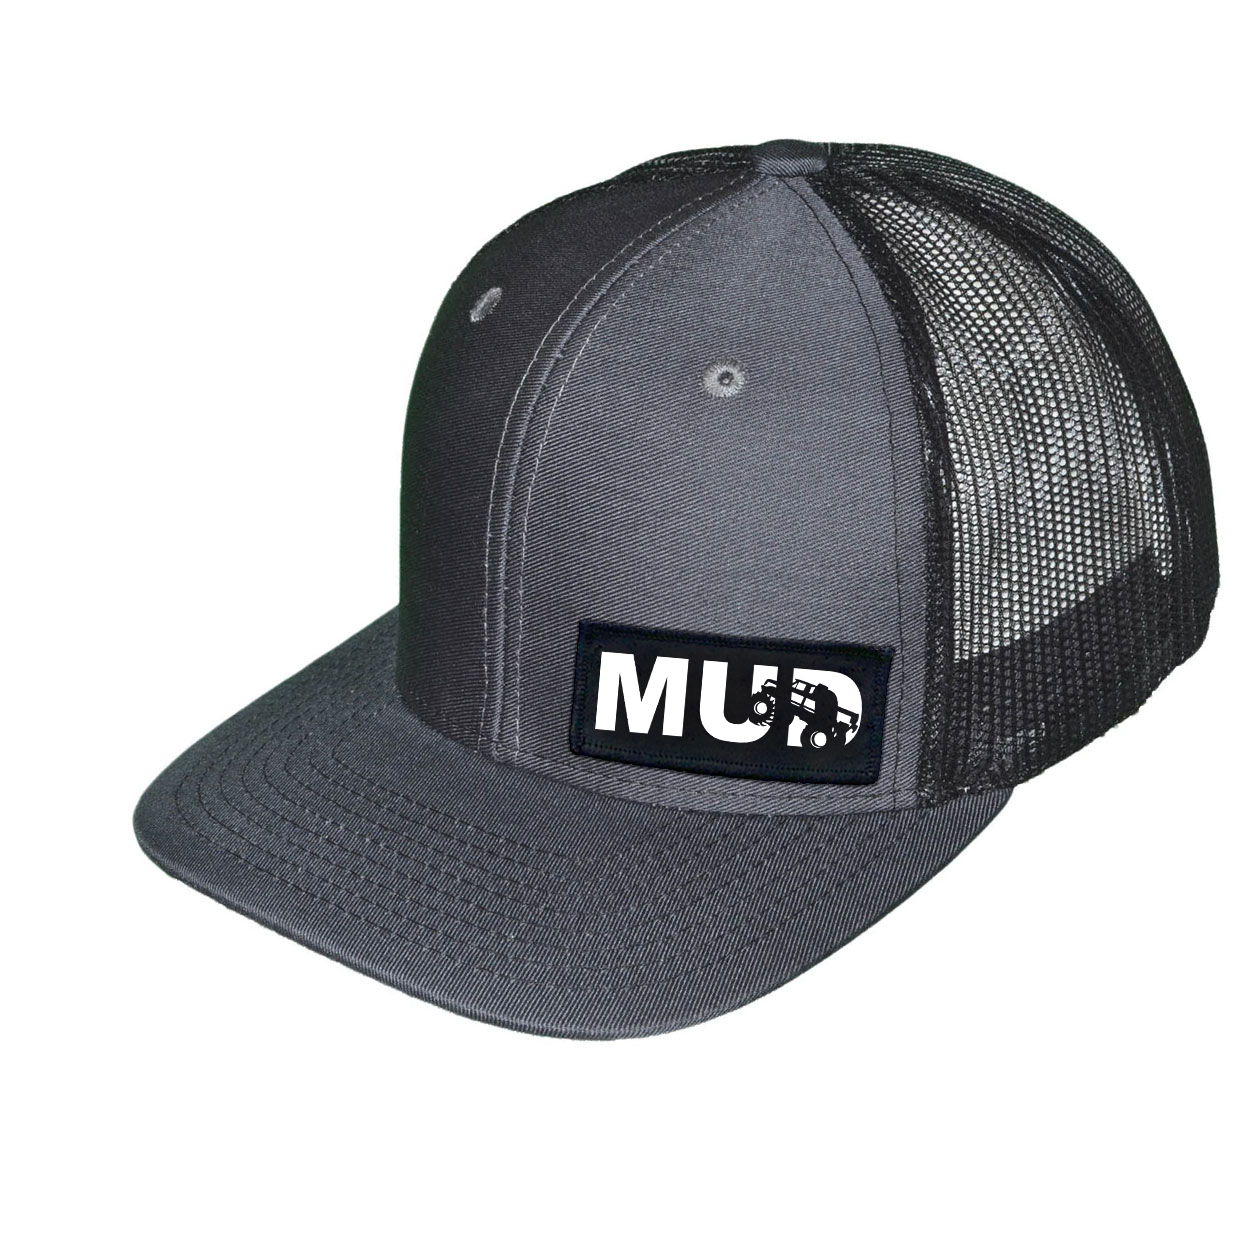 Mud Truck Logo Night Out Woven Patch Snapback Trucker Hat Dark Gray/Black (White Logo)